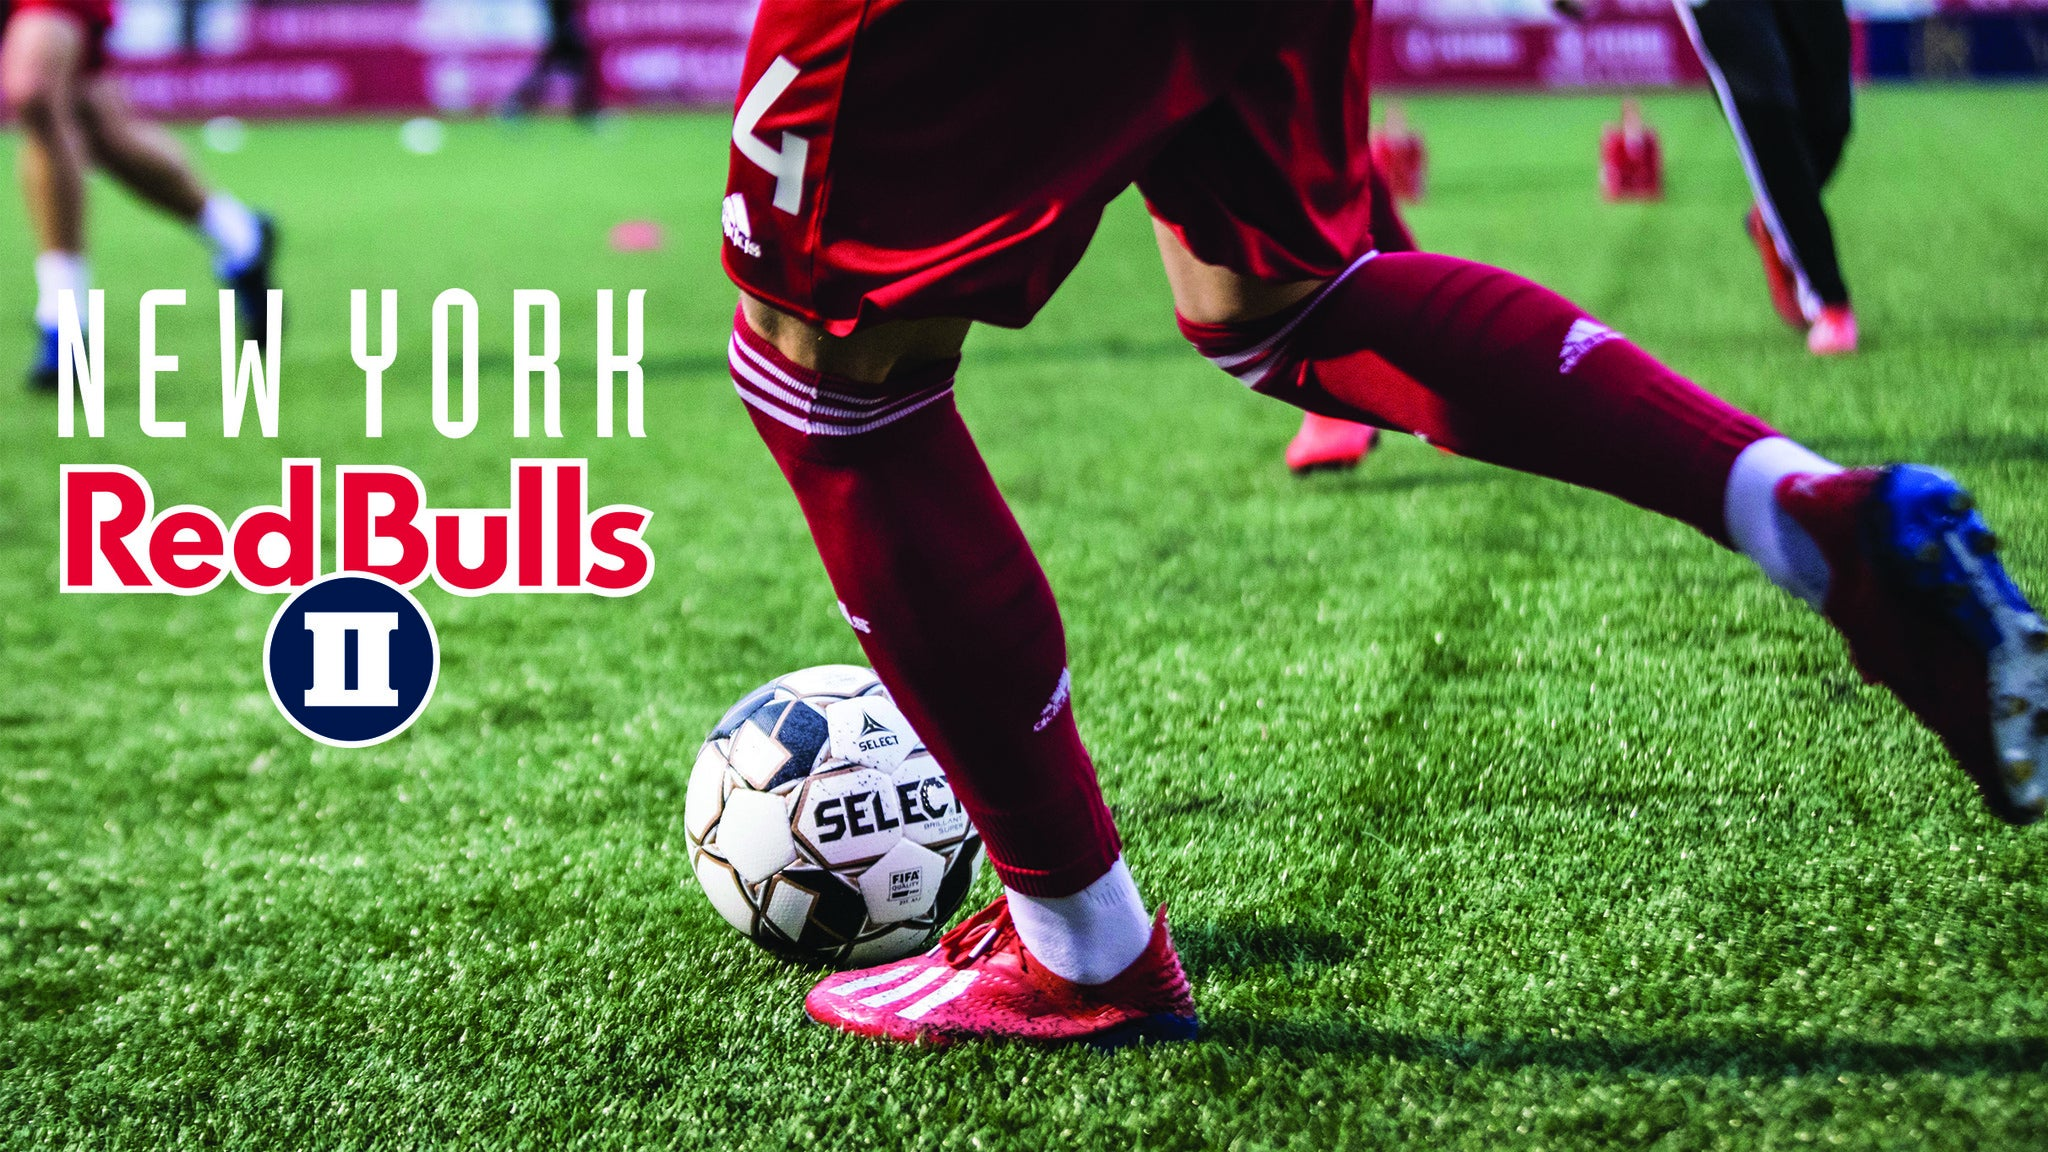 New York Red Bulls II vs. Hartford Athletic